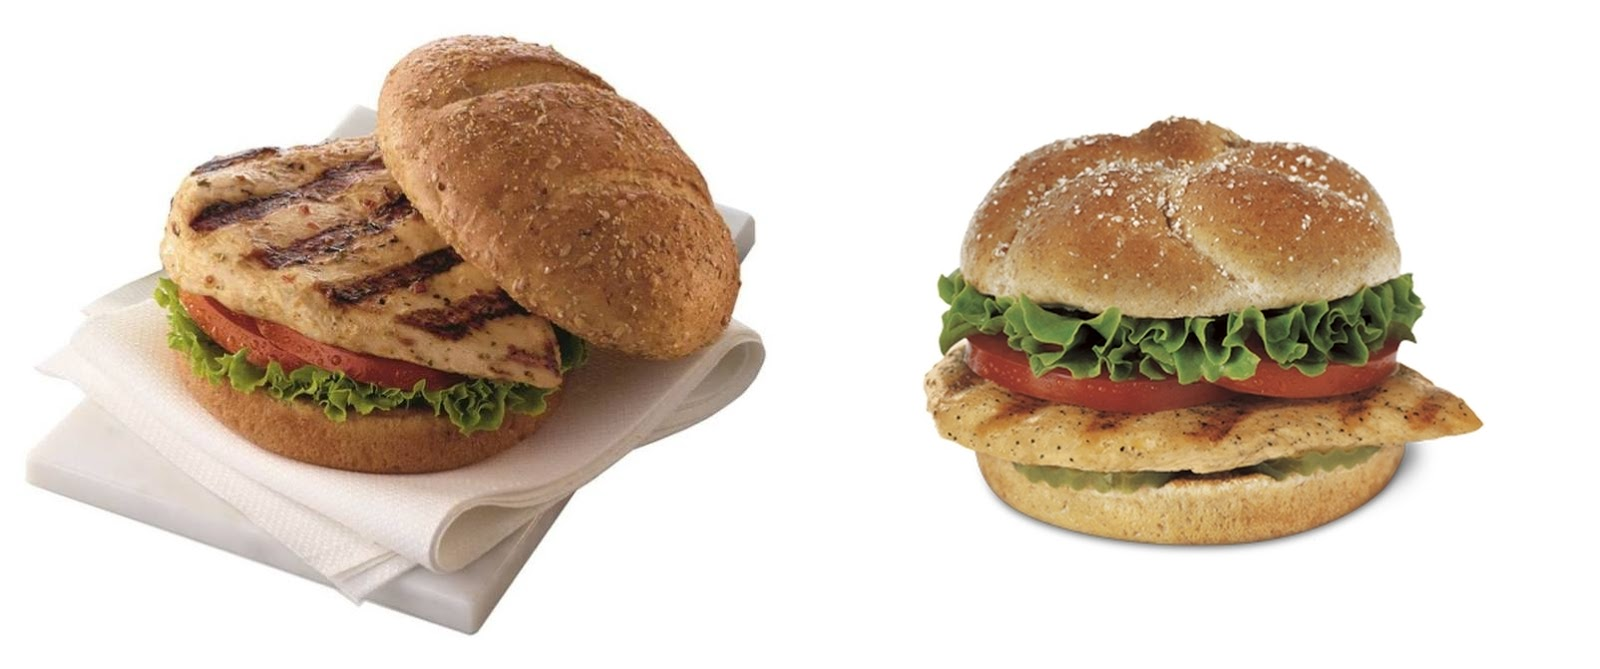 news chickfila testing new grilled chicken brand eating